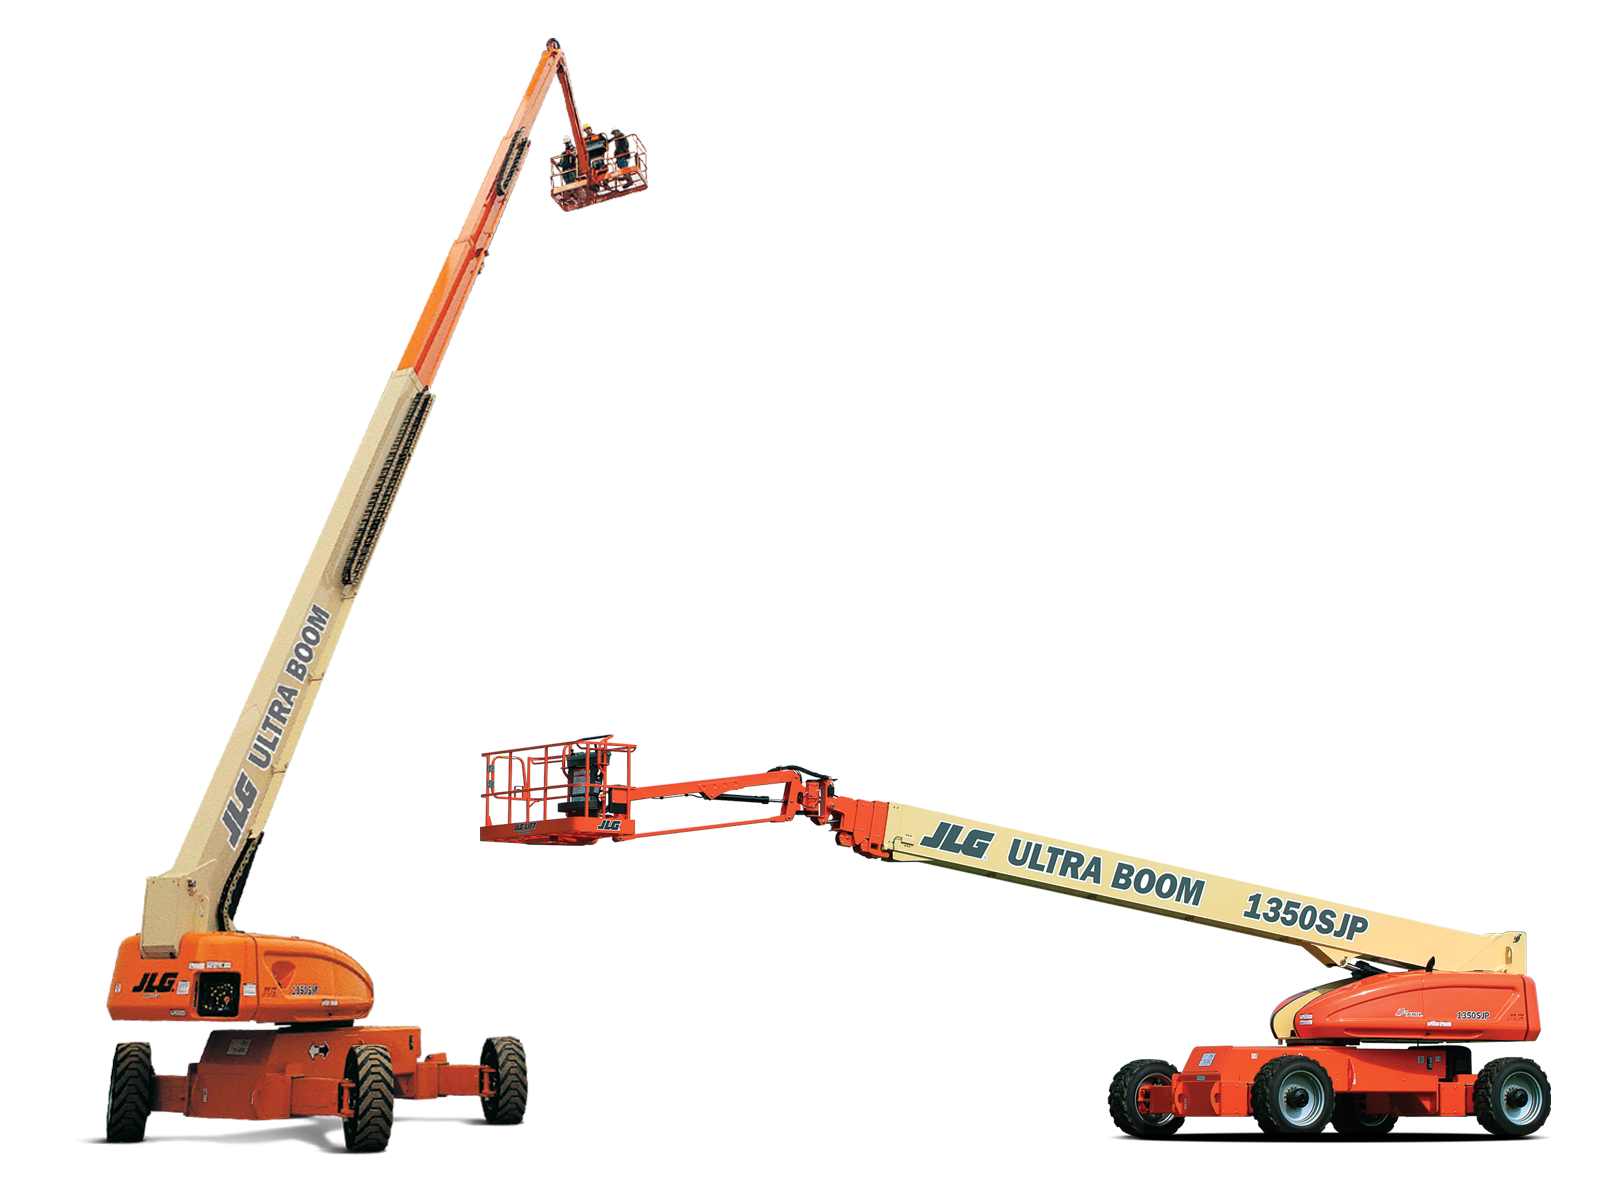 1350SJP Telescopic Boom Lift | JLG on jlg lift fuel tank, genie wiring diagram, jlg lift fan belt, komatsu wiring diagram, john deere wiring diagram, jlg lift spark plug,